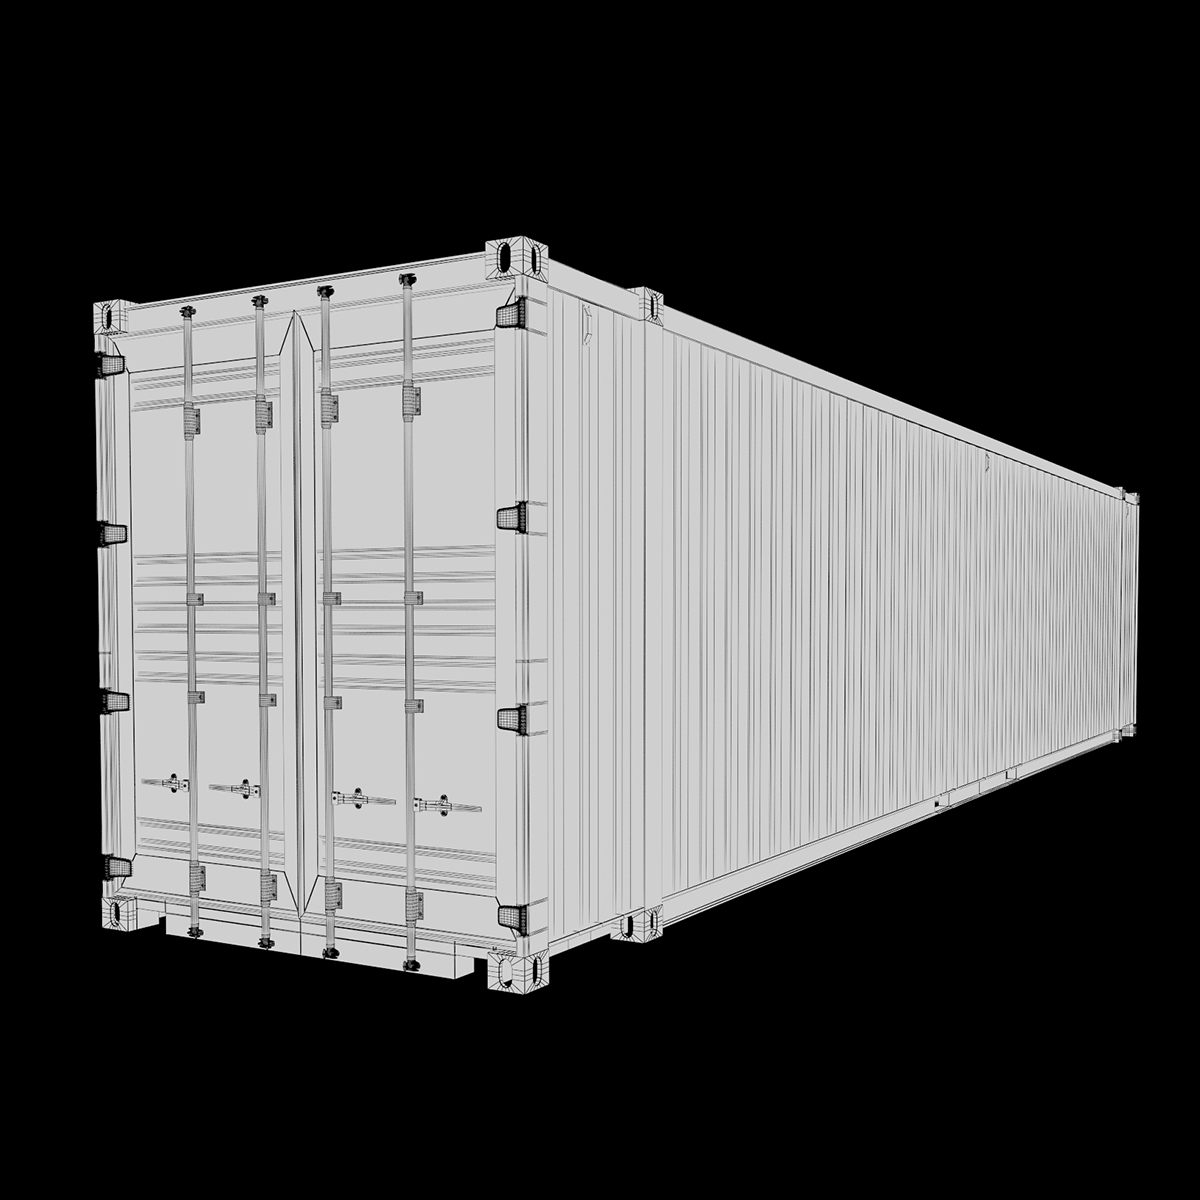 45 feet high cube pil shipping container 3d model max fbx ma mb texture obj 278446